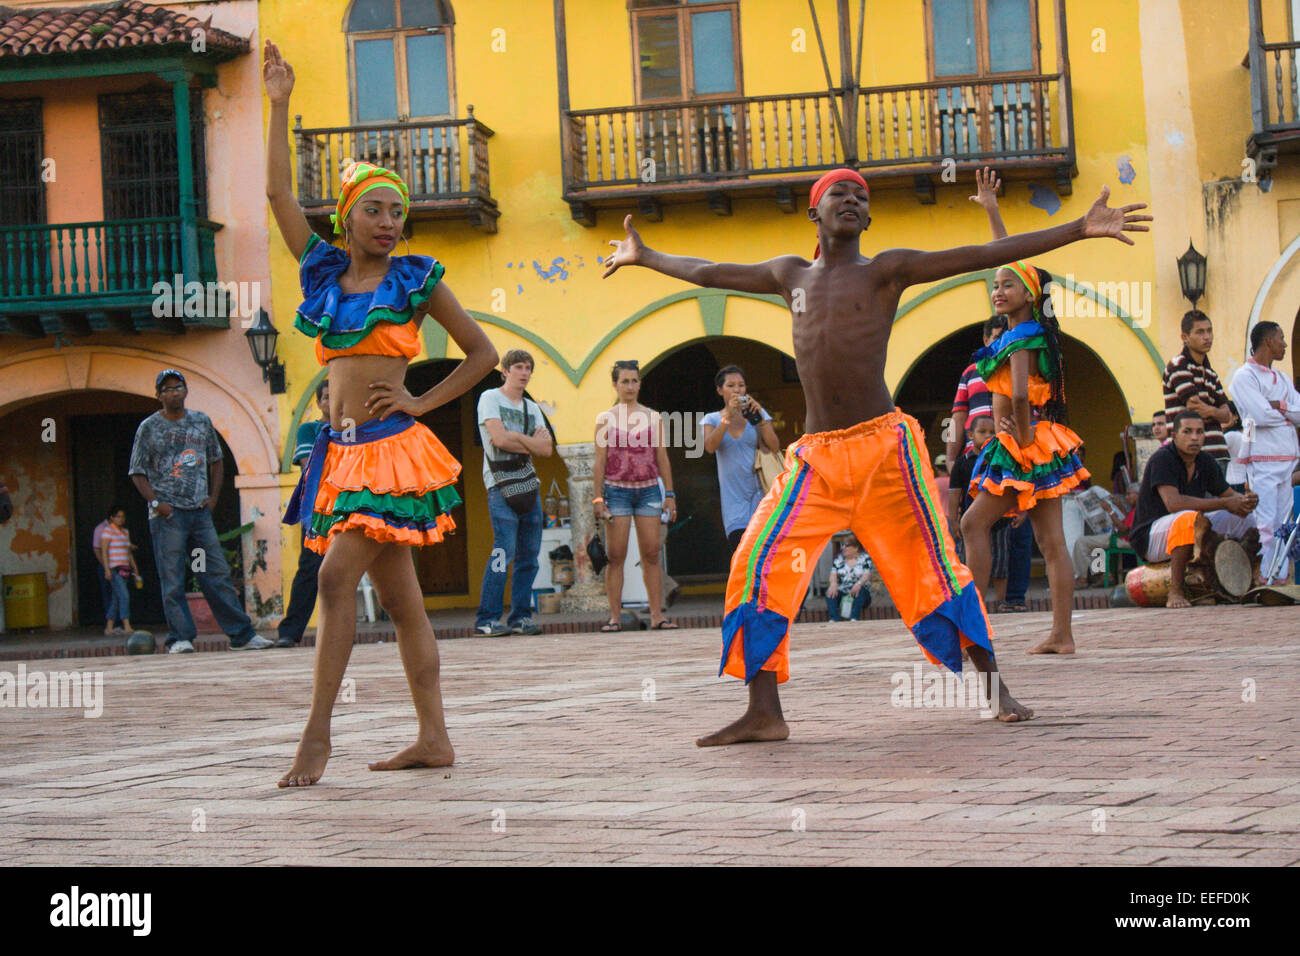 Traditional Mapele dancing in Cartagena's Old Town, Colombia - Stock Image